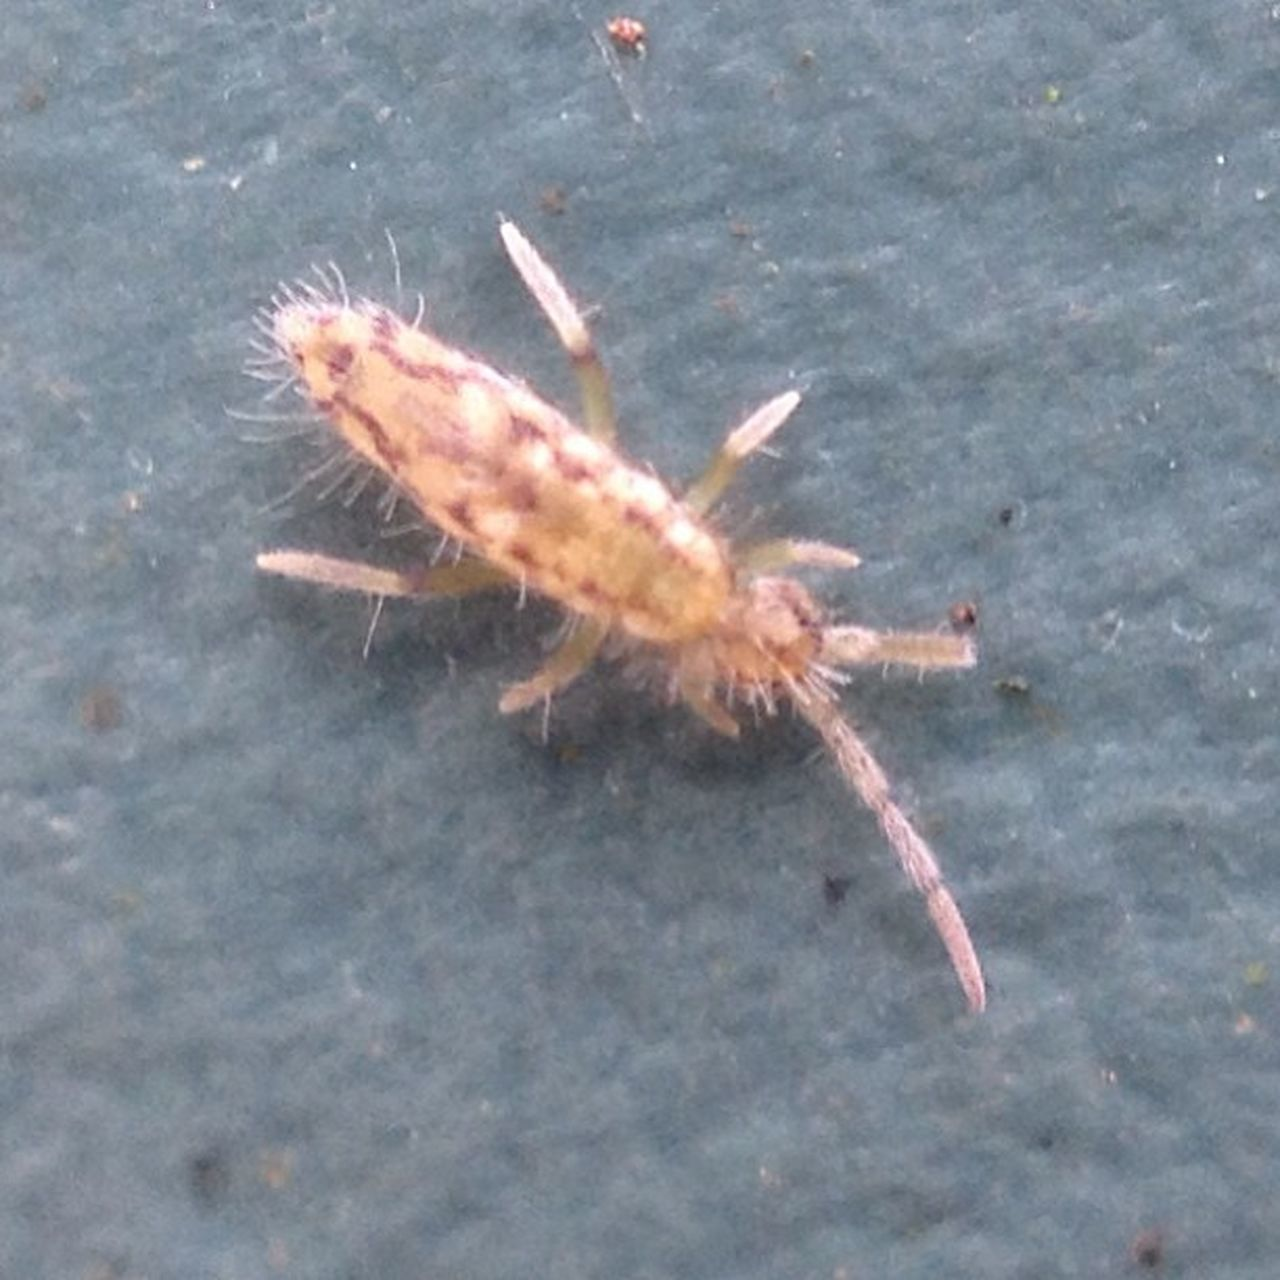 Springtail.. About 2-3mm #insect #improvedimage #springtail #olloclip #tiny #tipn #bug #iphoneography #iphone #4s Improvedimage Springtail IPhone IPhoneography Insect Olloclip Bug Tiny 4s Tipn